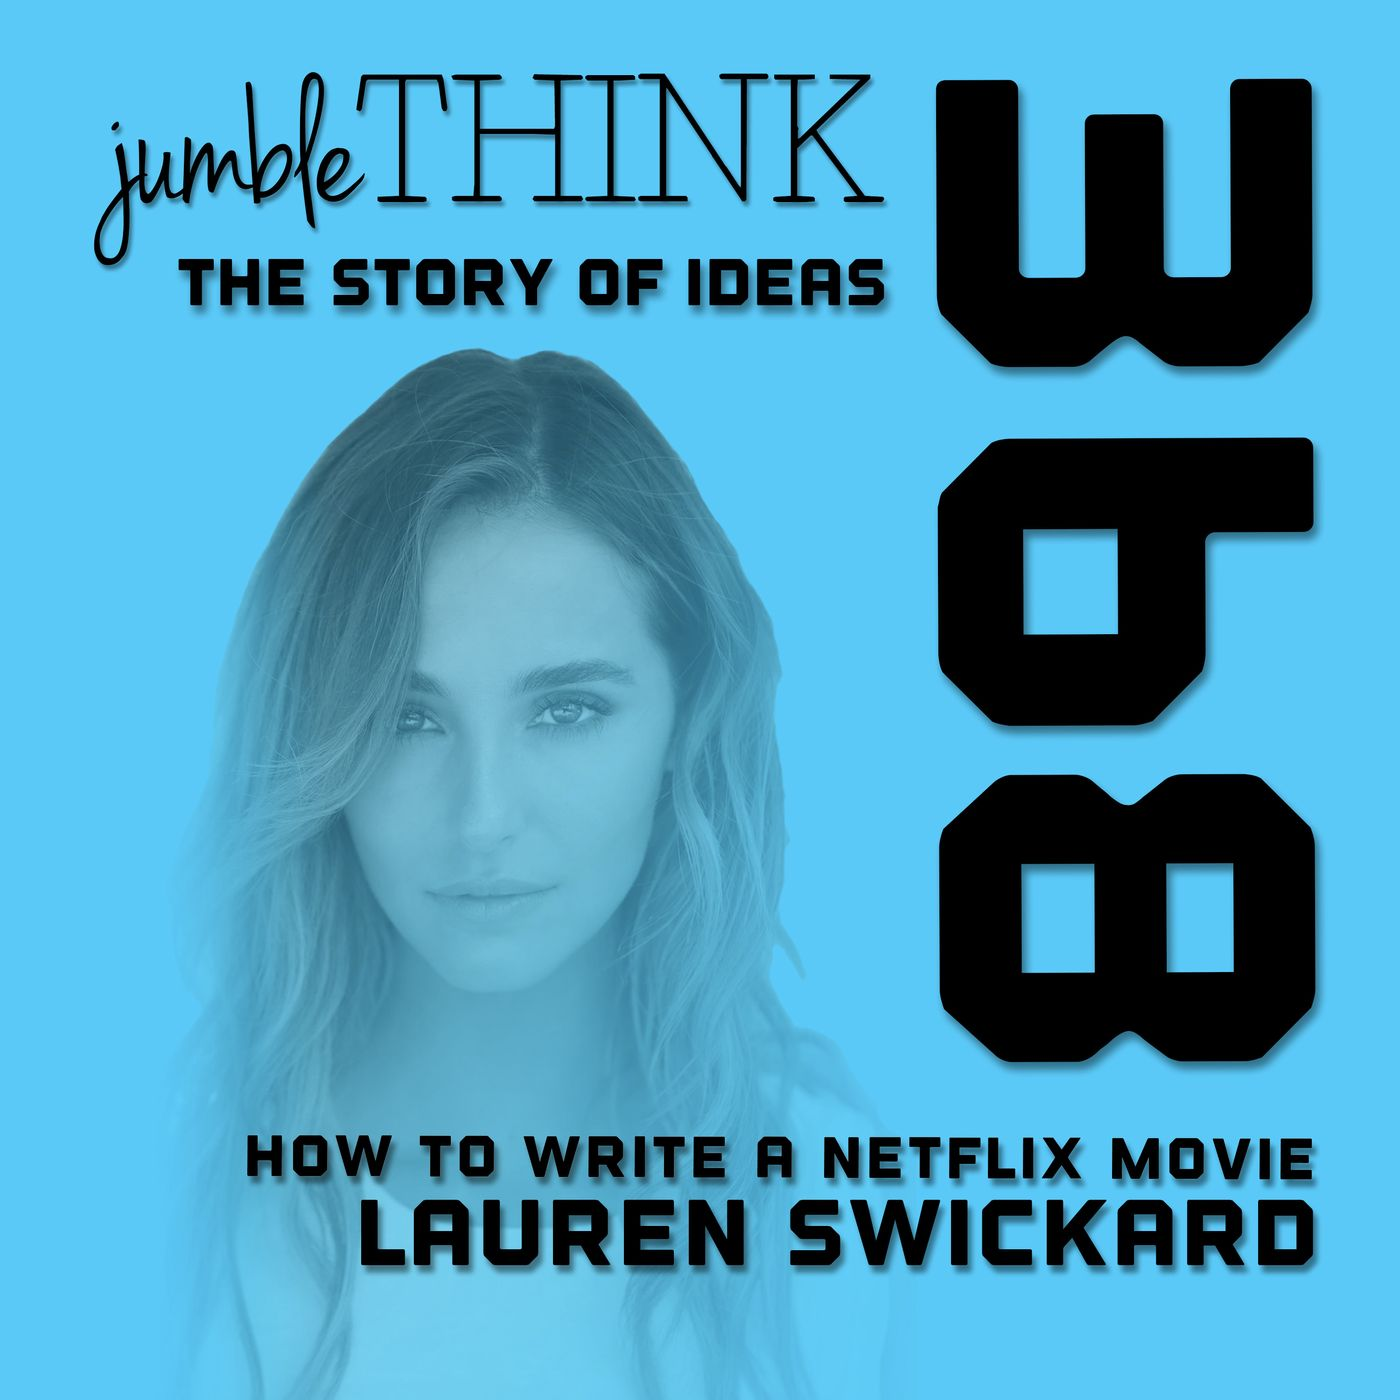 How to Write a Netflix Movie with Lauren Swickard